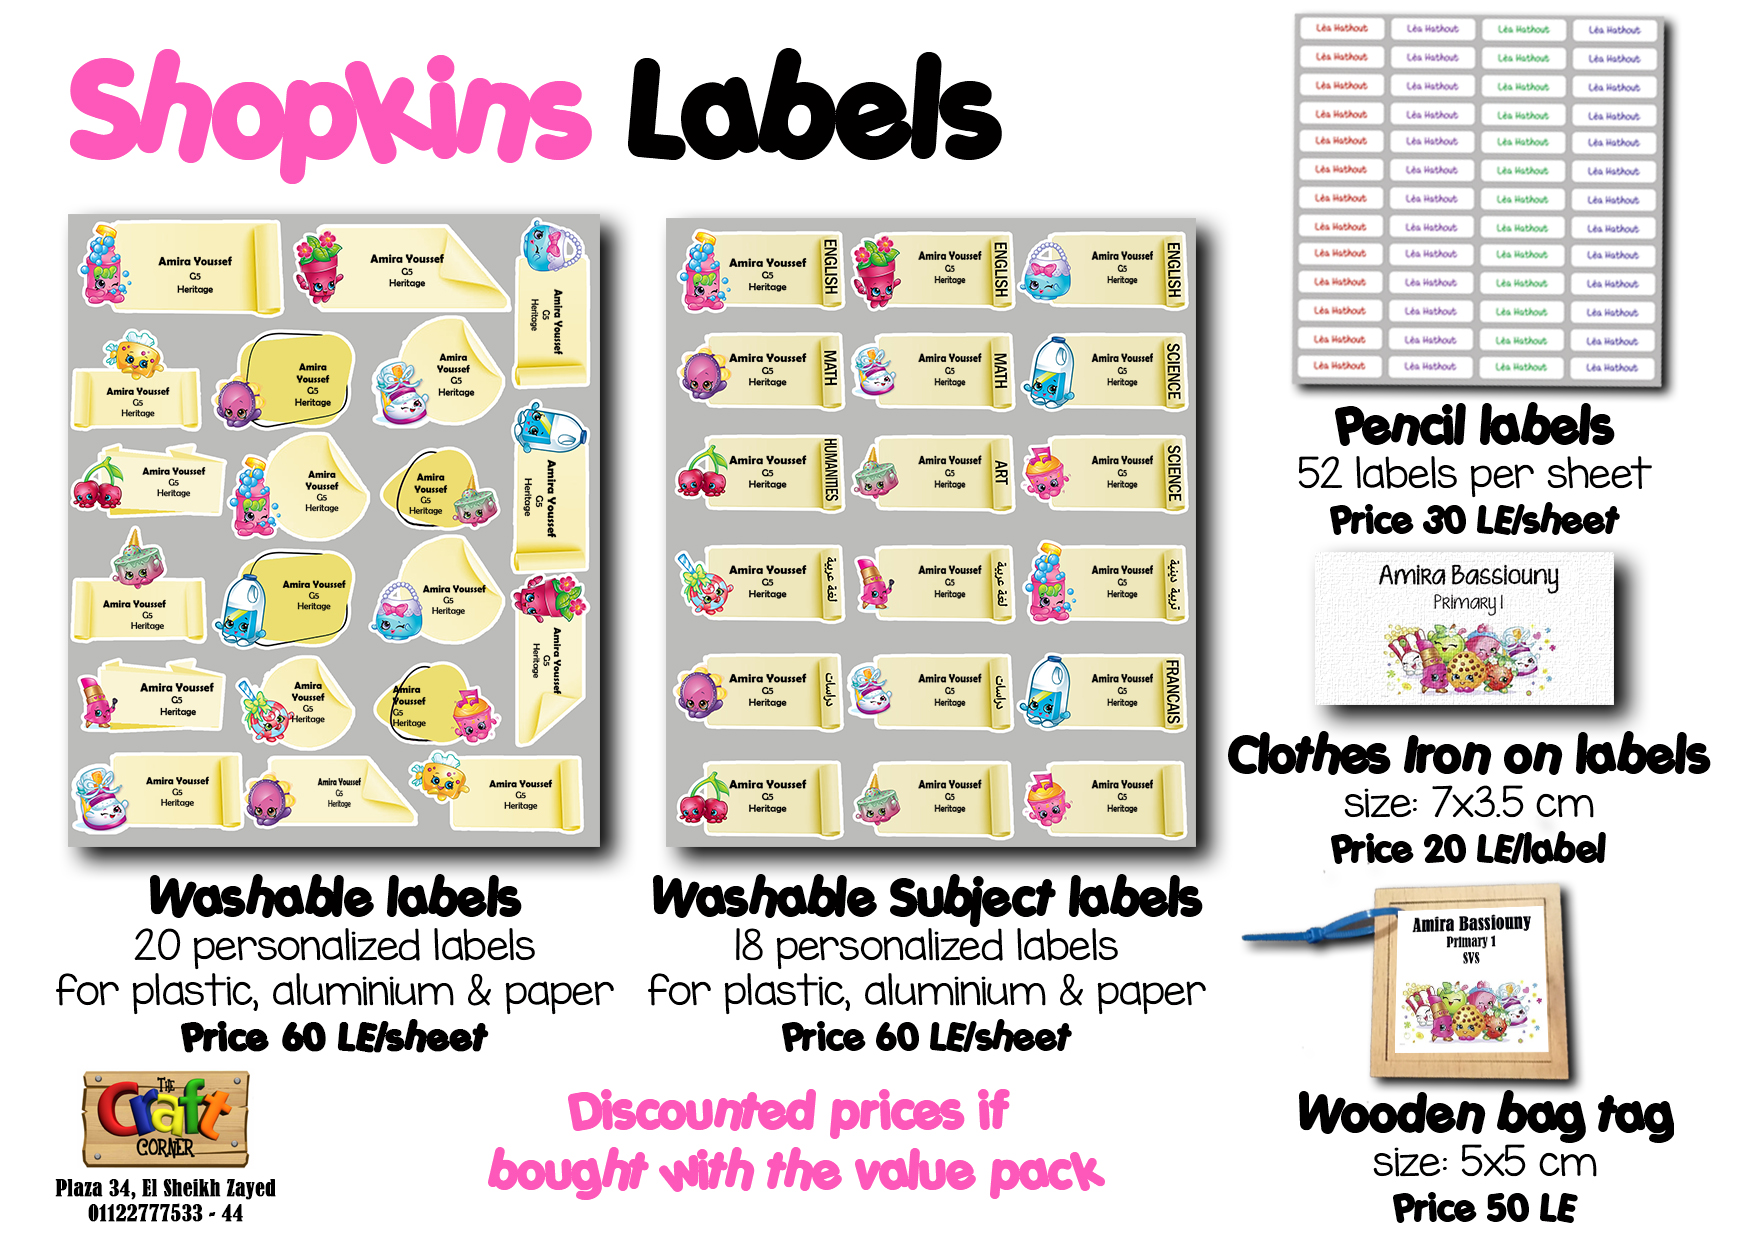 shopkins Labels